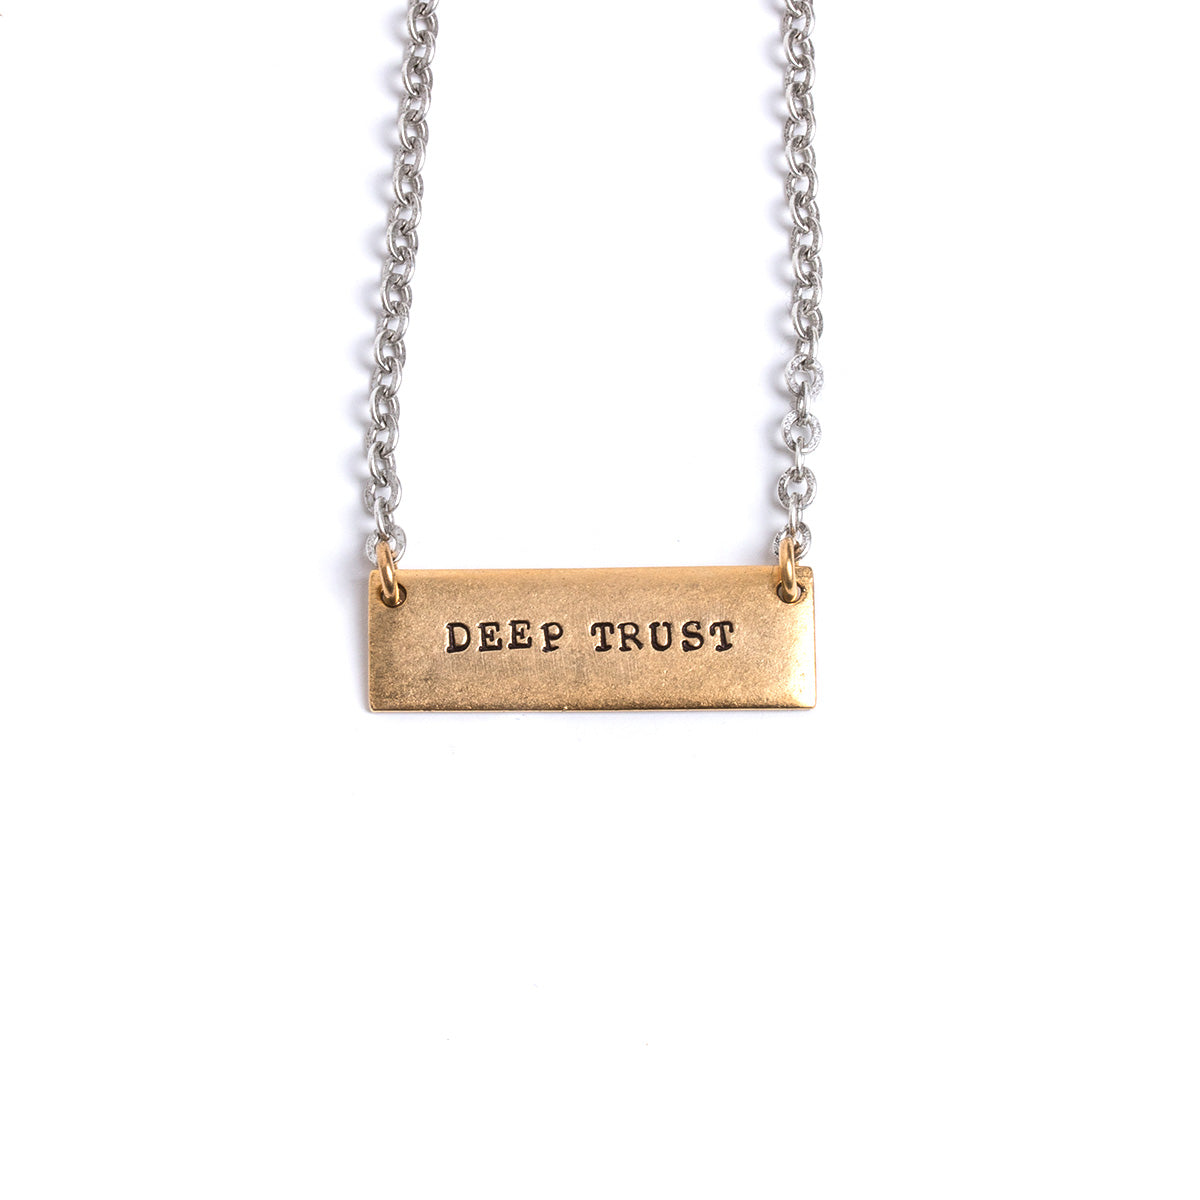 Brave Dreamer/Deep Trust Tema necklace